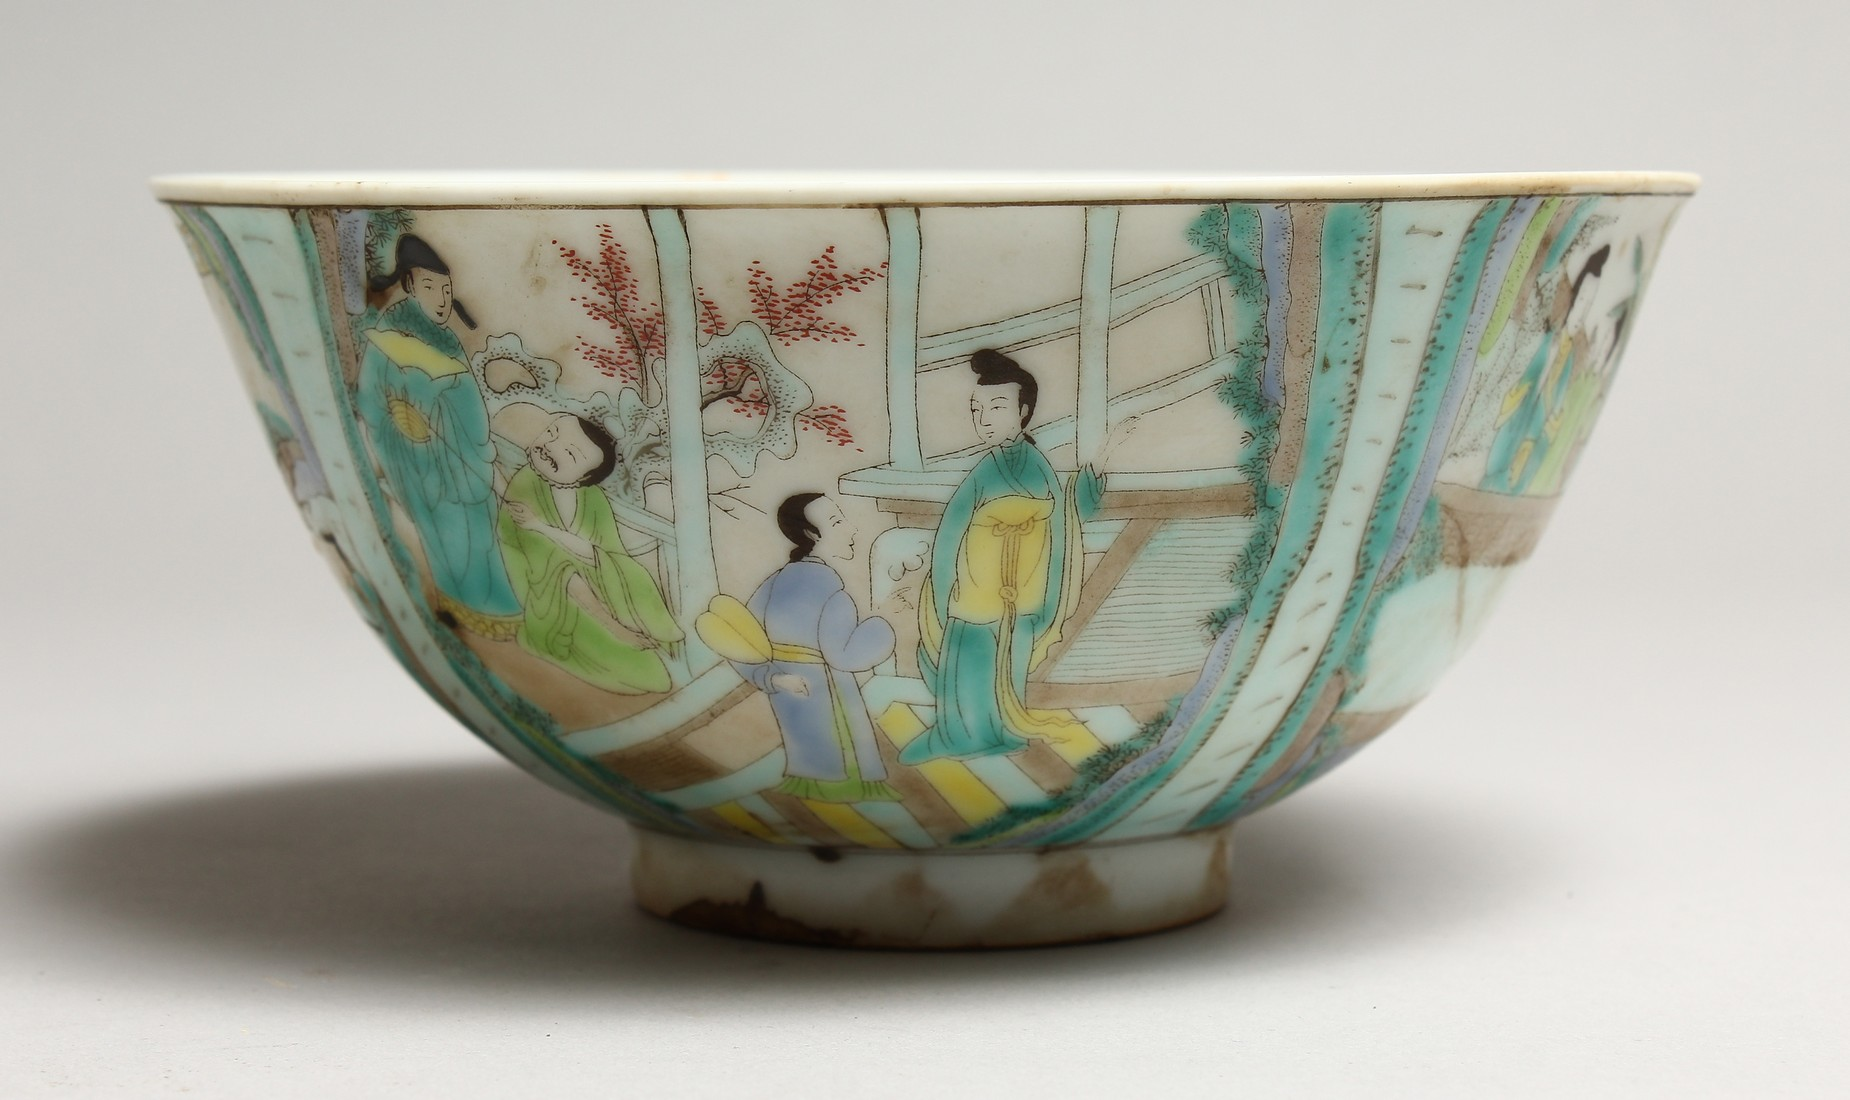 A CHINESE FAMILLE VERTE PORCELAIN BOWL, painted with figures in a landscape. 6.25ins diameter.